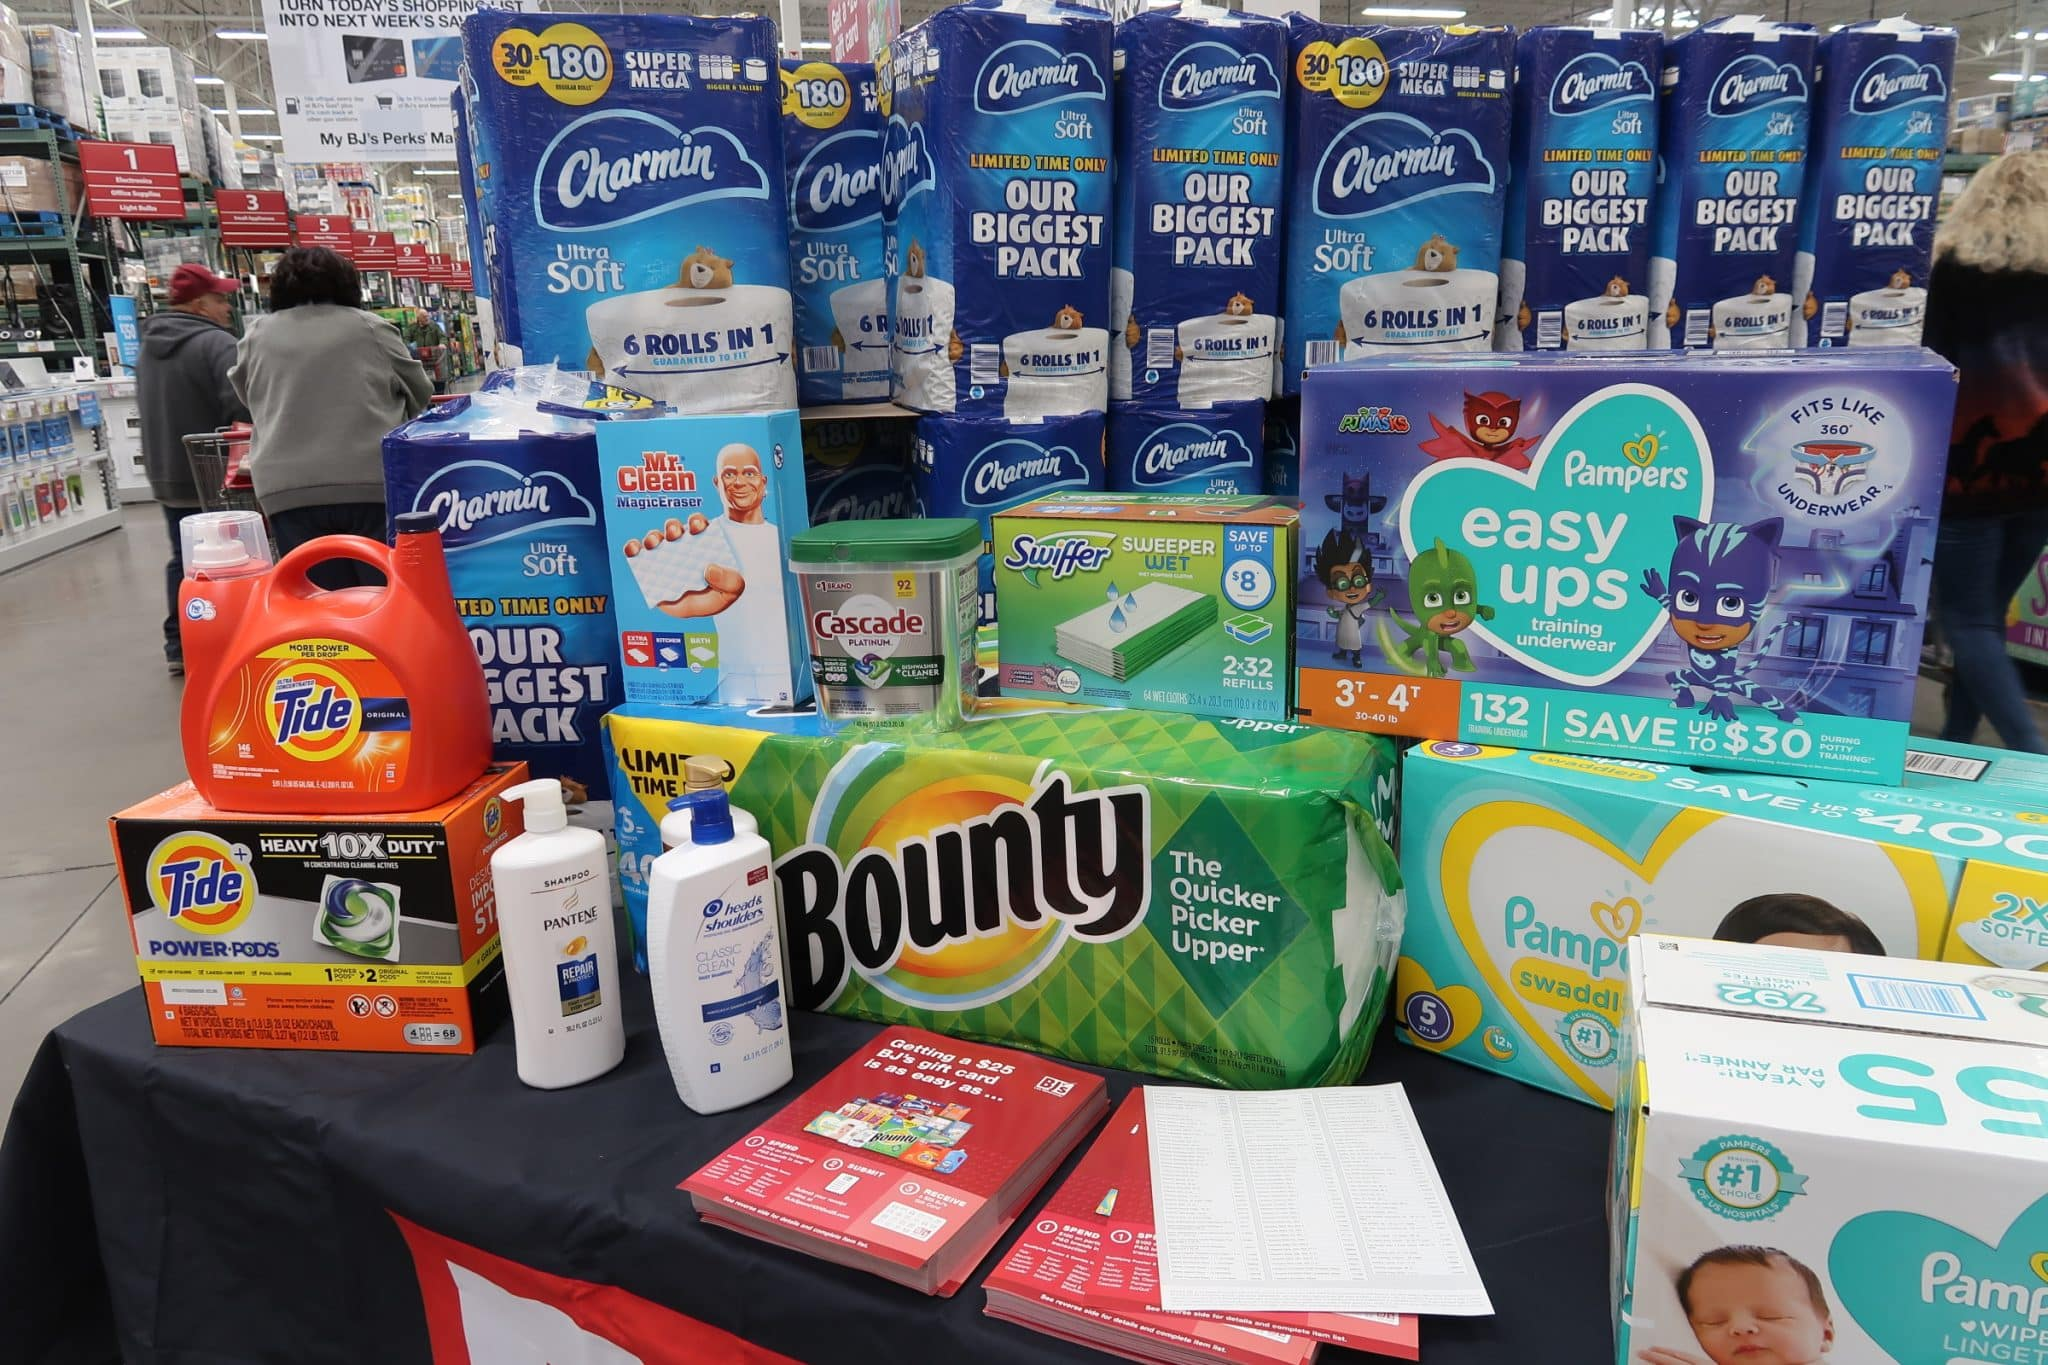 3 Deal Ideas For the P&G Promo at BJs This Month